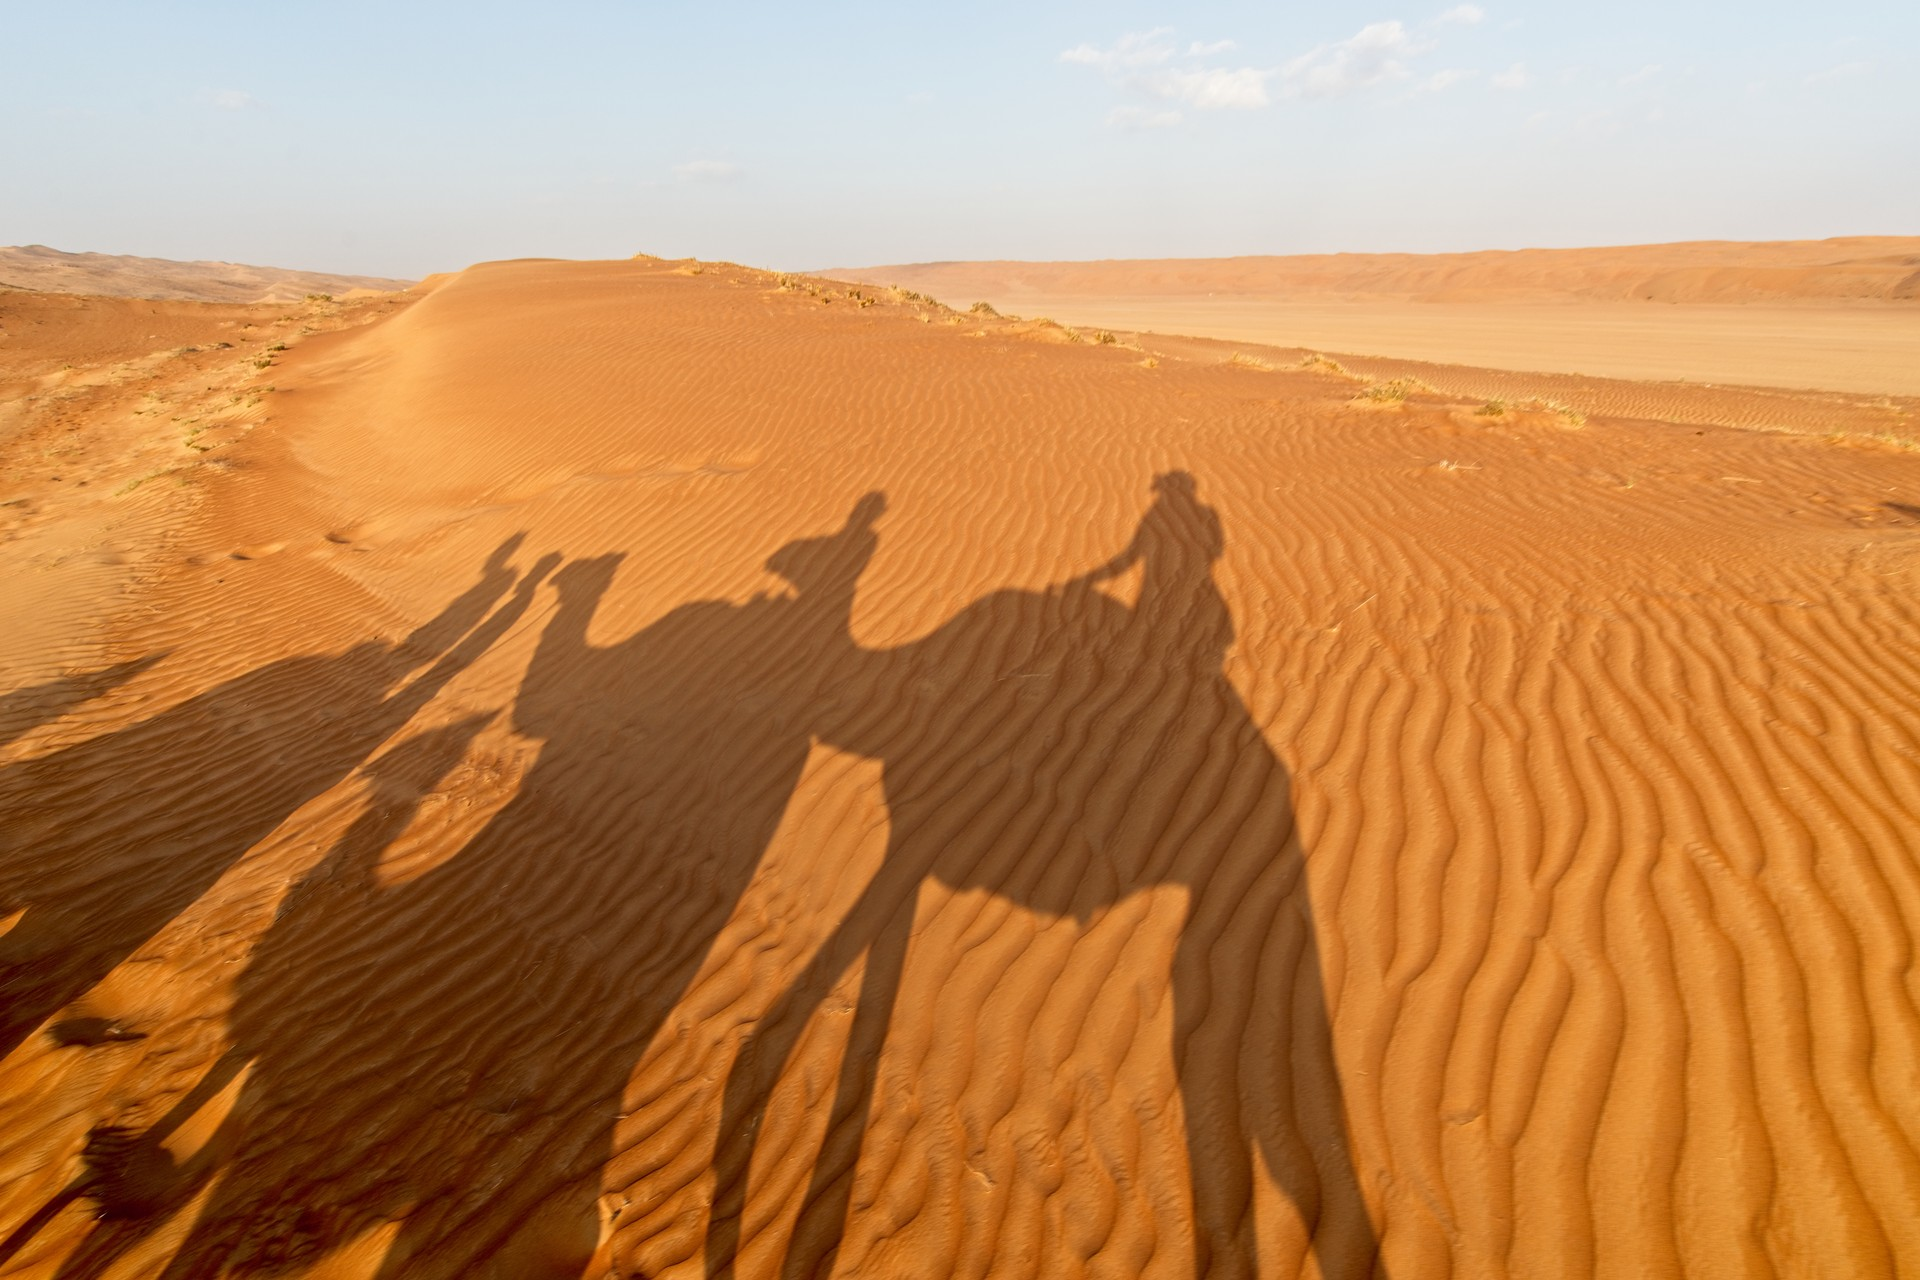 Shadows of camels in Wahiba Sands in Oman